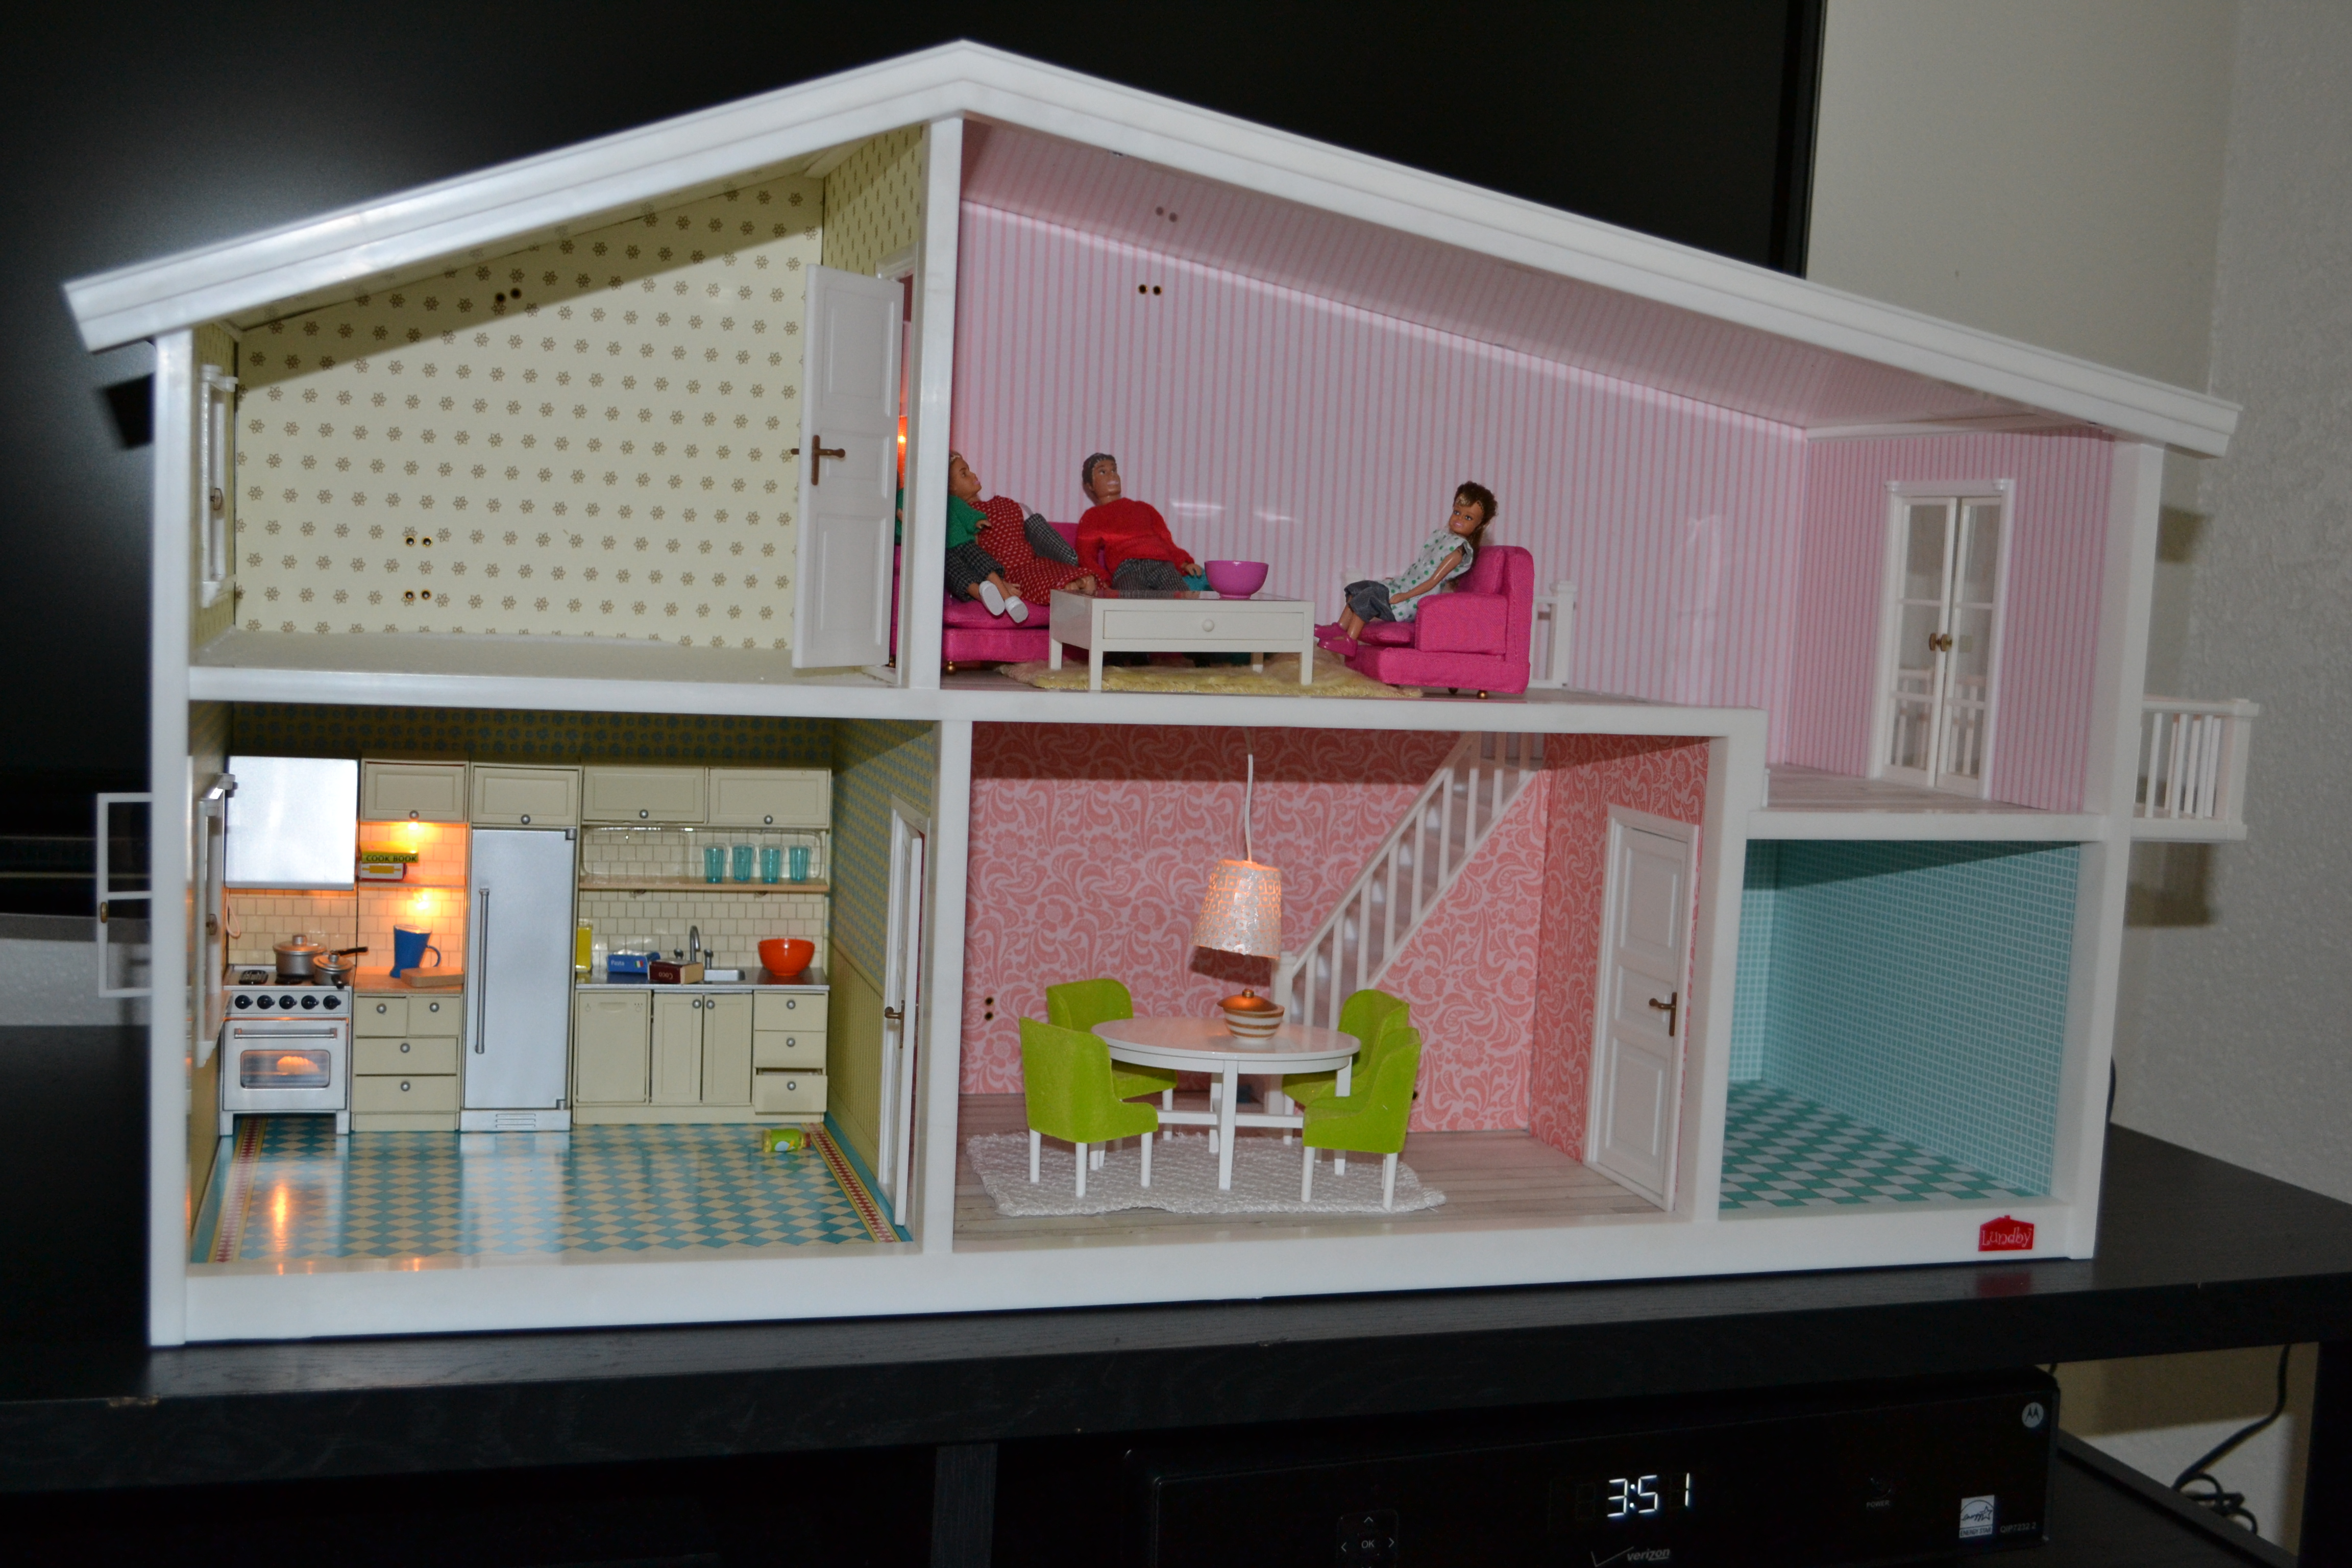 Alistbaby loves lundby dollhouse for Young house love dollhouse